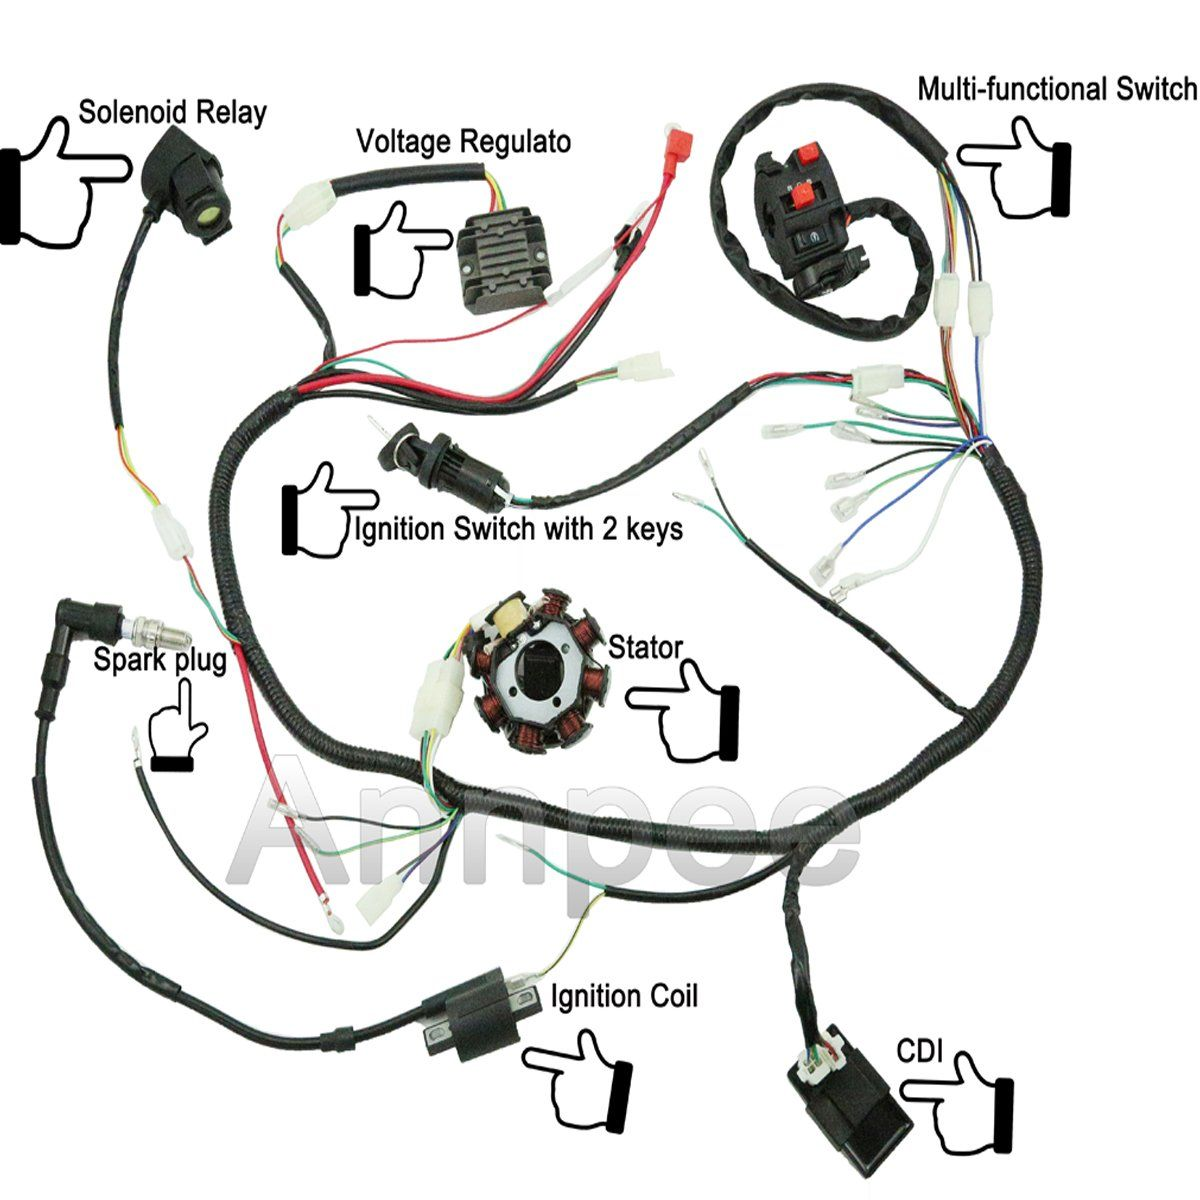 50cc Dirt Bike Wiring Diagram Wiring Diagram Motorcycle Wiring 50cc Dirt Bike Atv Quads